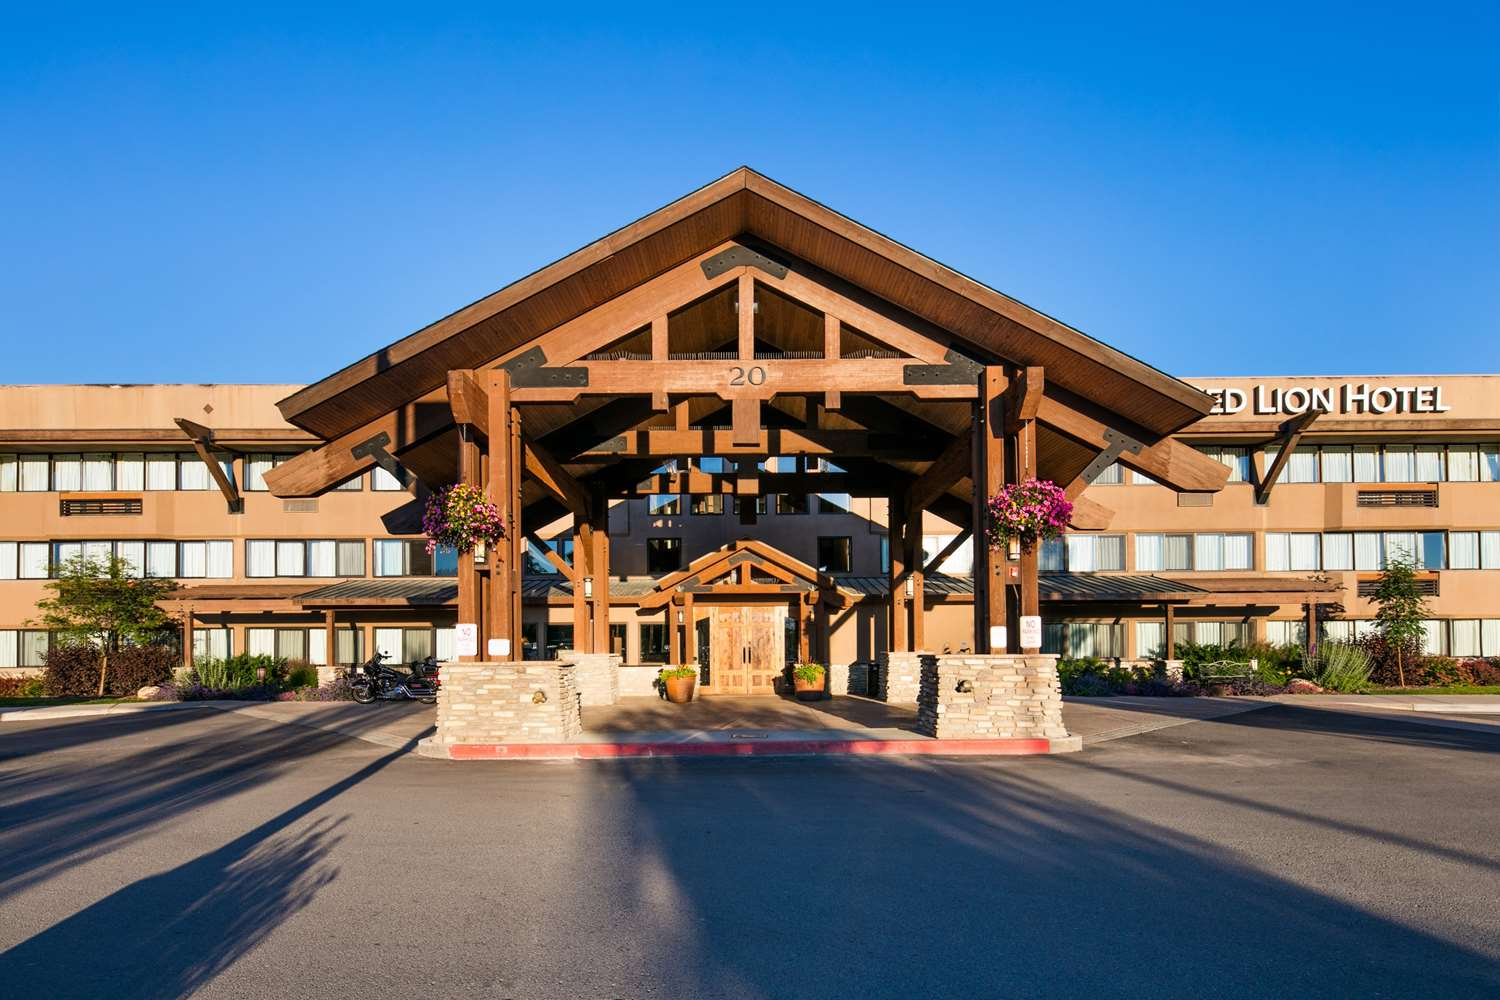 Red Lion Hotel Kalispell, MT - See Discounts